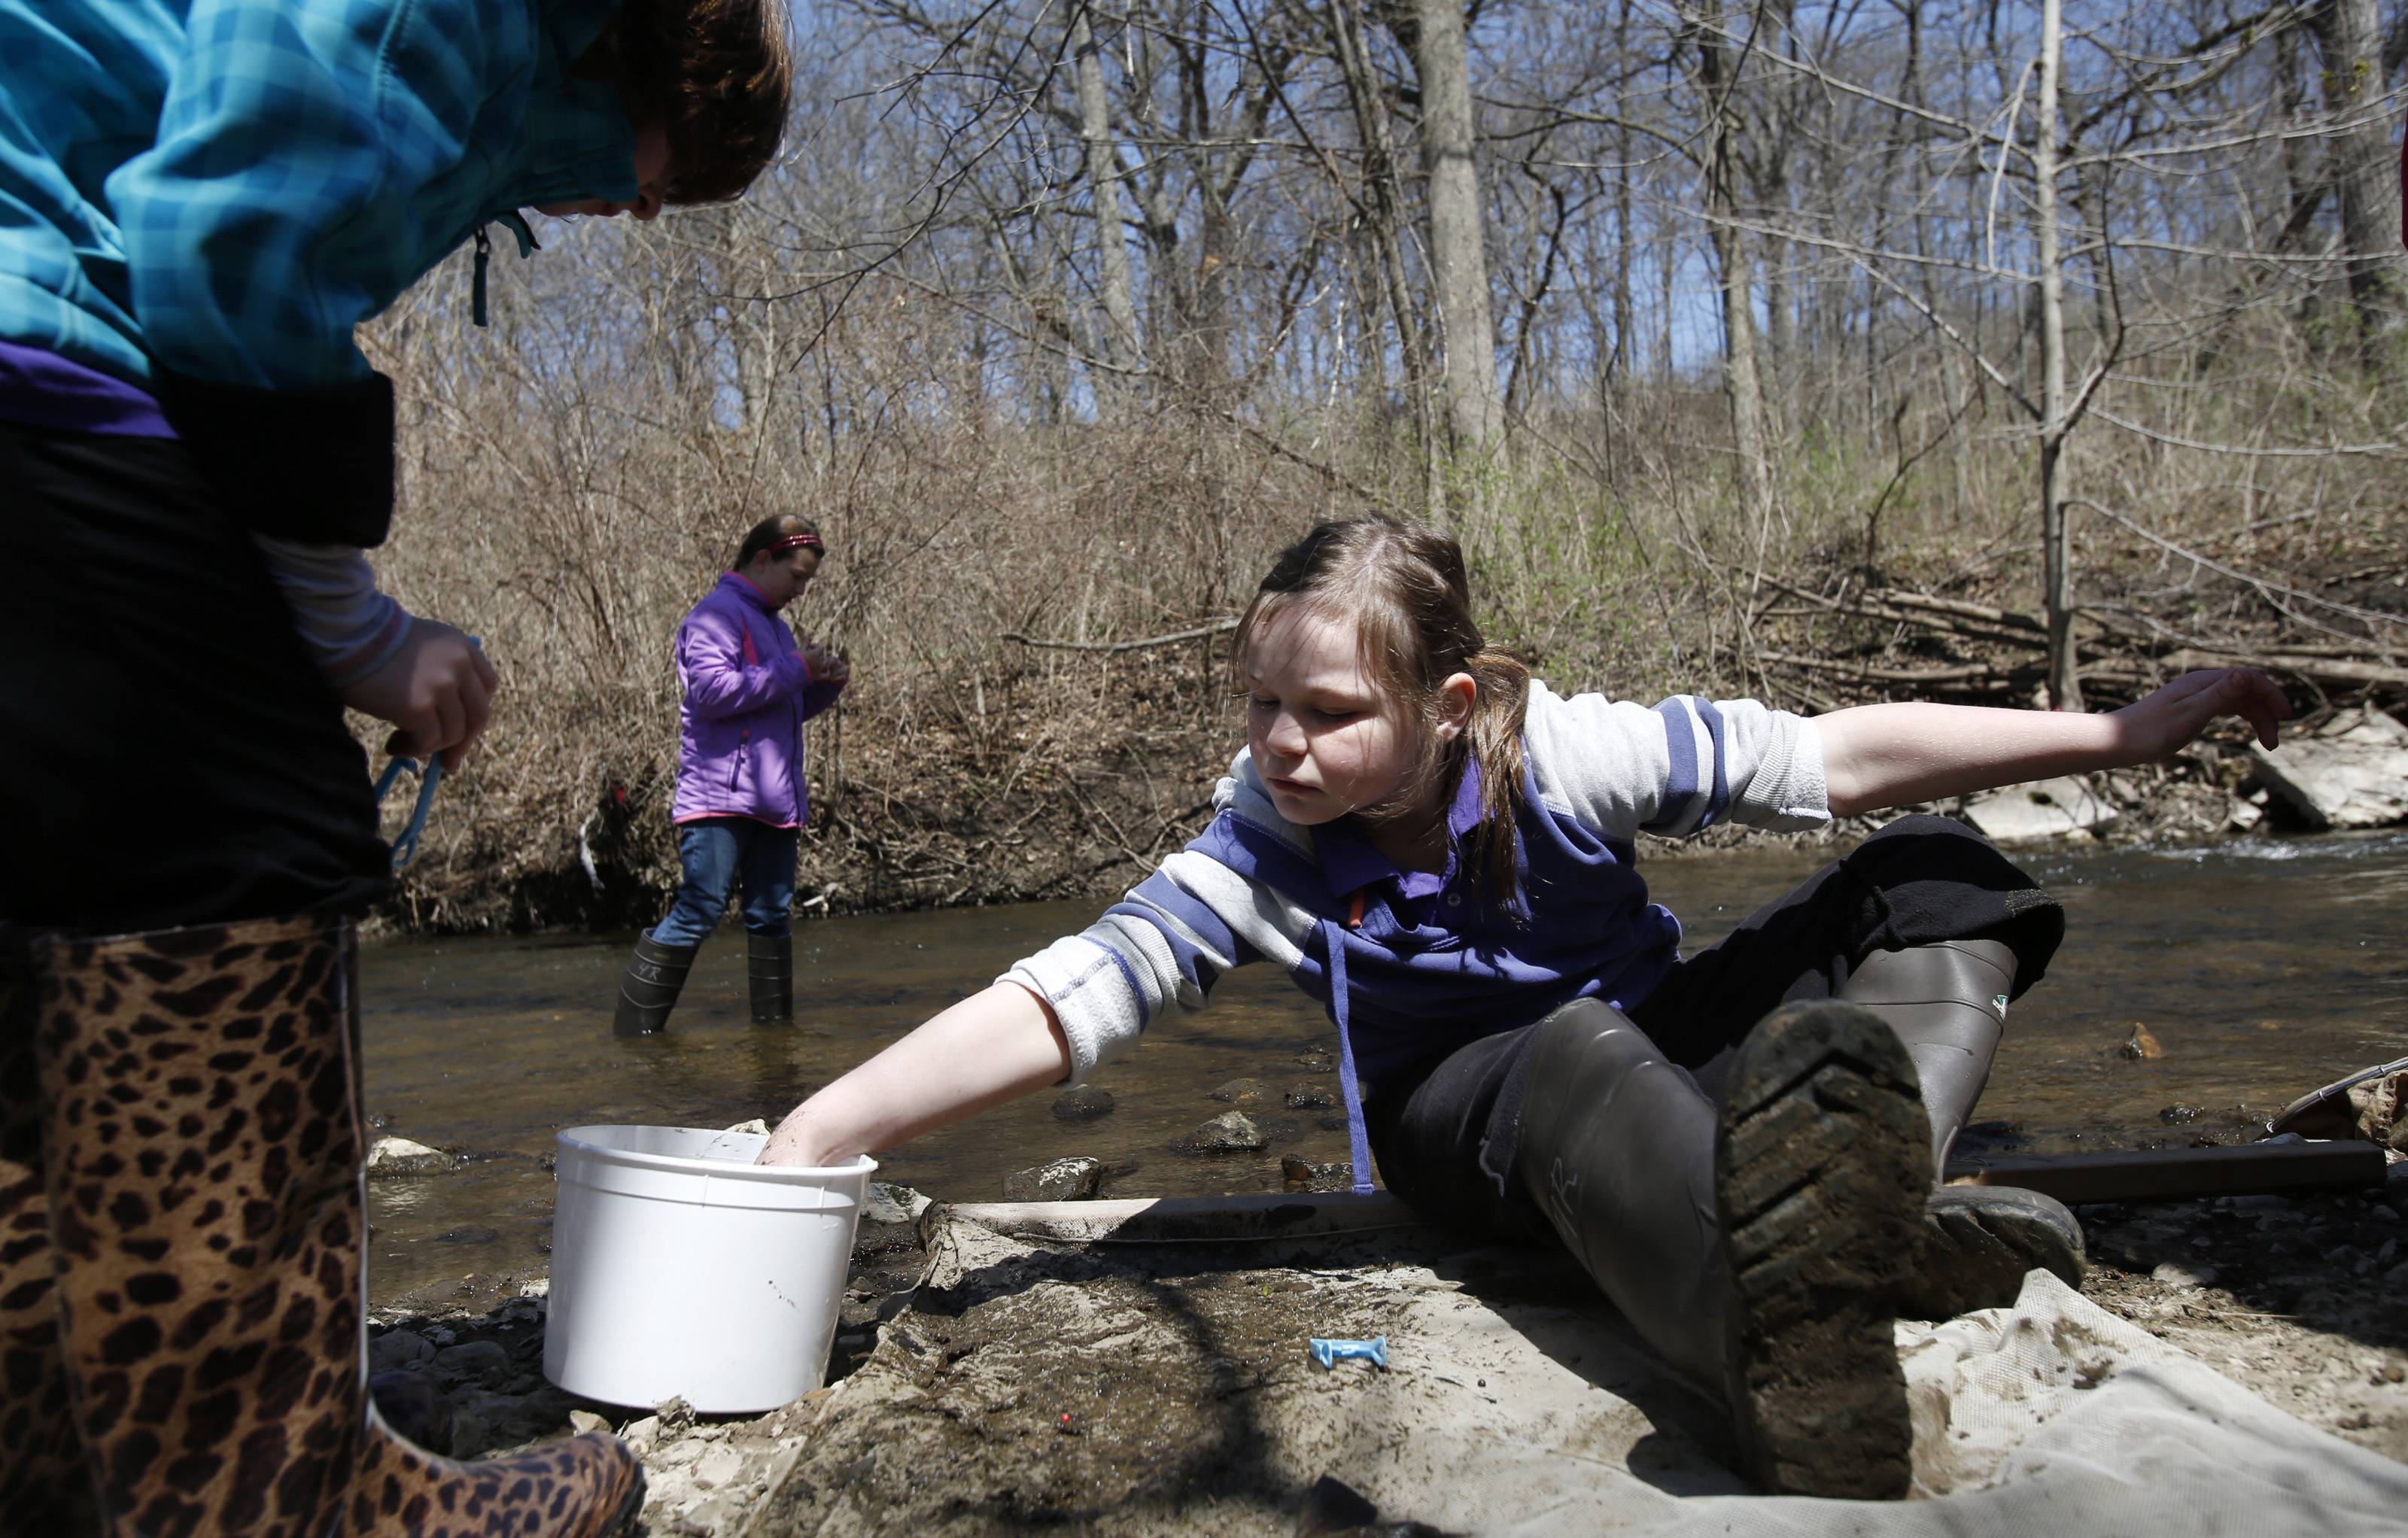 Einstein Academy third-grader Andrea Rathjen of Elgin works on specimens she collected with classmates Tuesday at the Tyler Creek Forest Preserve in Elgin. Looking over her work is second-grade classmate Jordan Merlo of Bartlett, as third-grader Annabel Ehreth of Elgin walks the creek in the background. Einstein Academy students spend a day studying Tyler Creek each Earth Day, in partnership with the Friends of the Fox River organization, to help monitor the health of the stream.